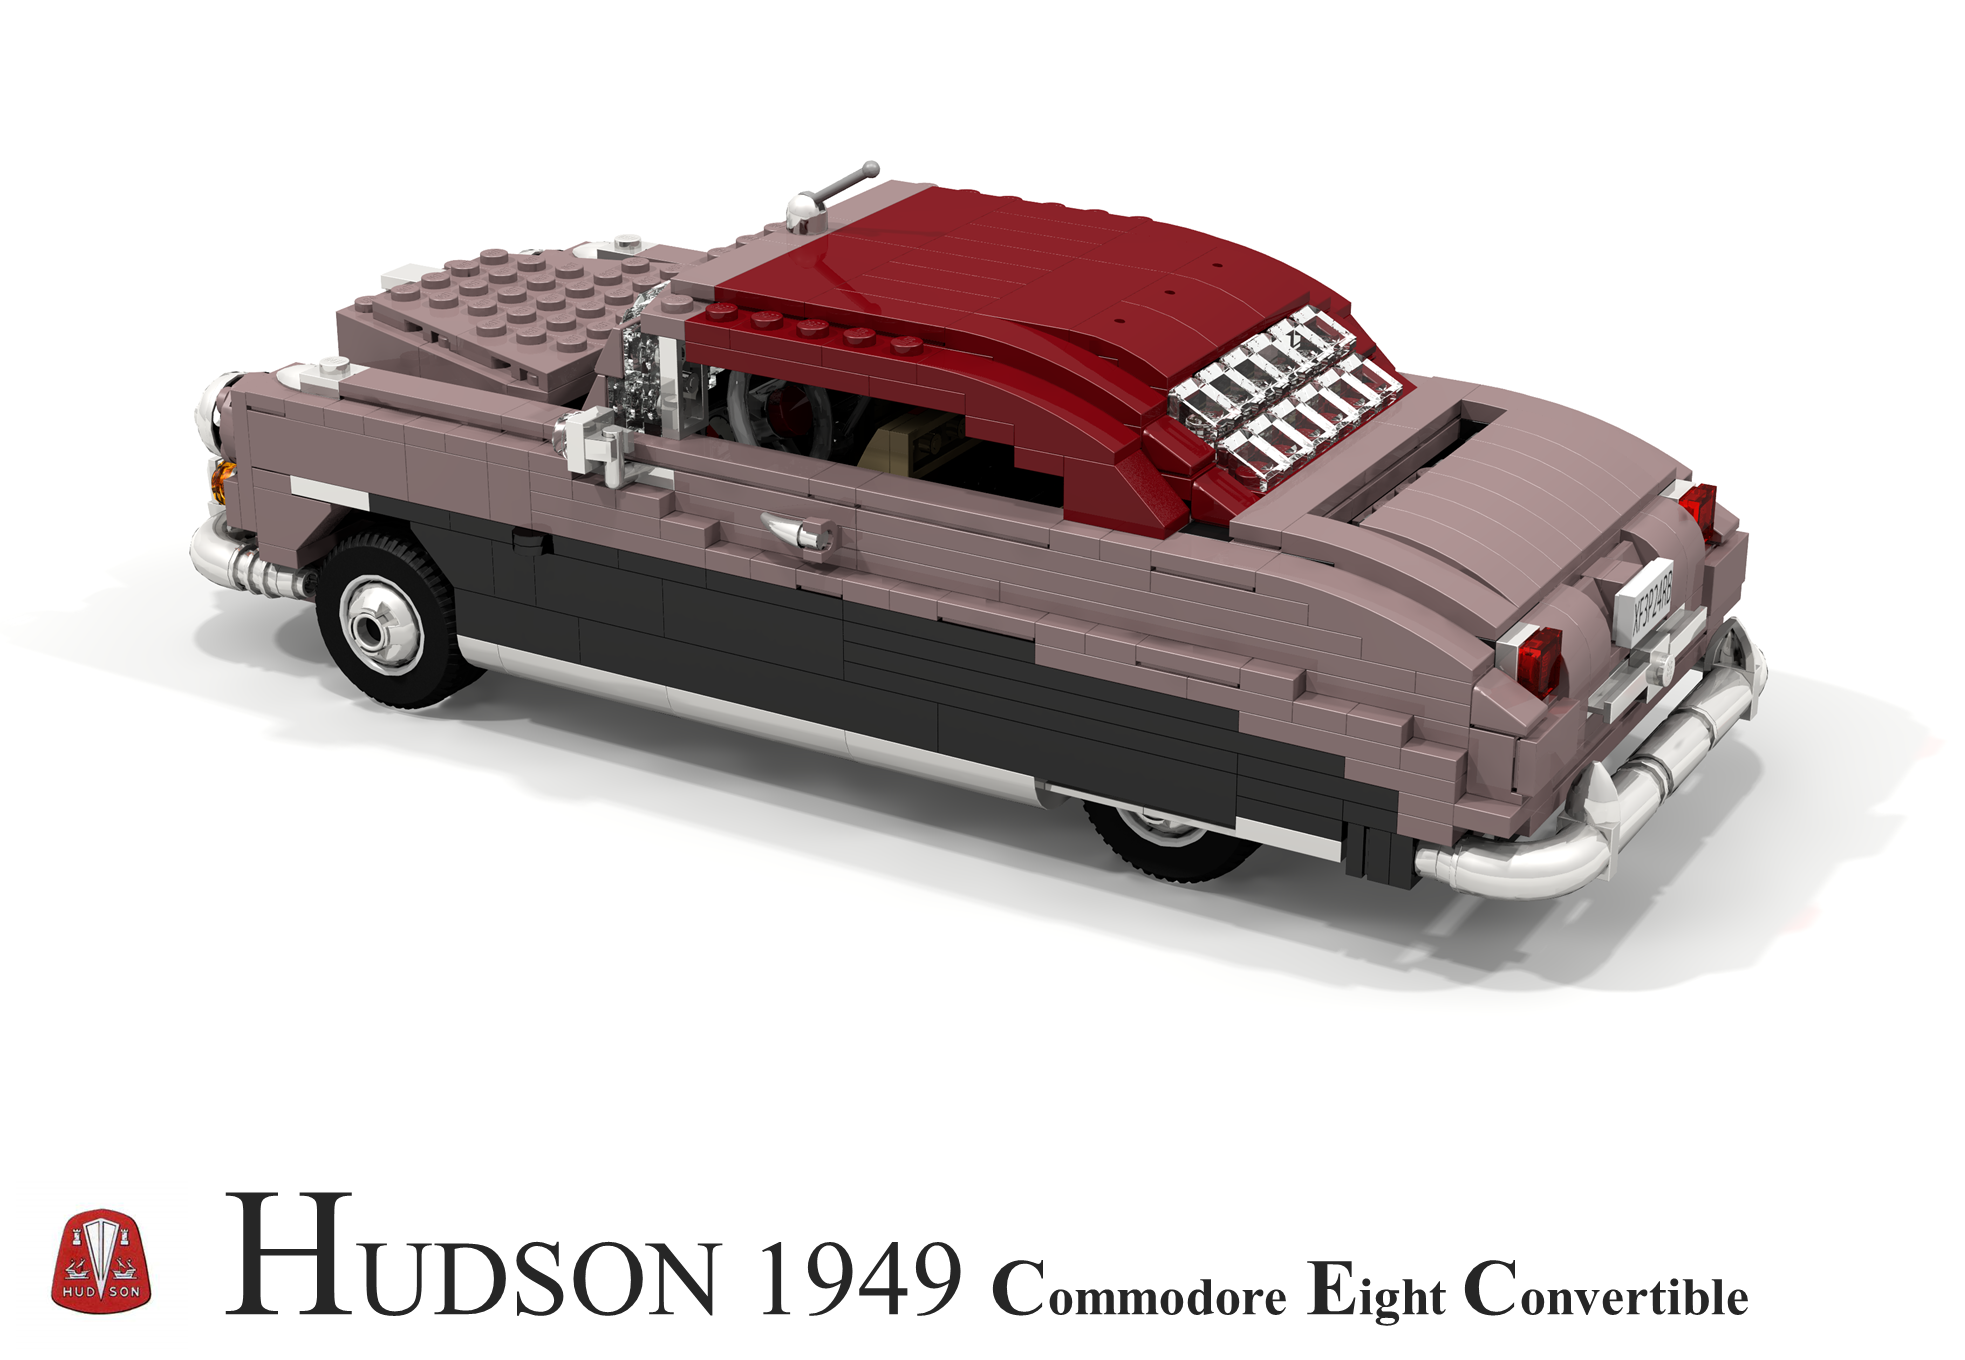 hudson_1949_commodore_eight_convertible_02.png